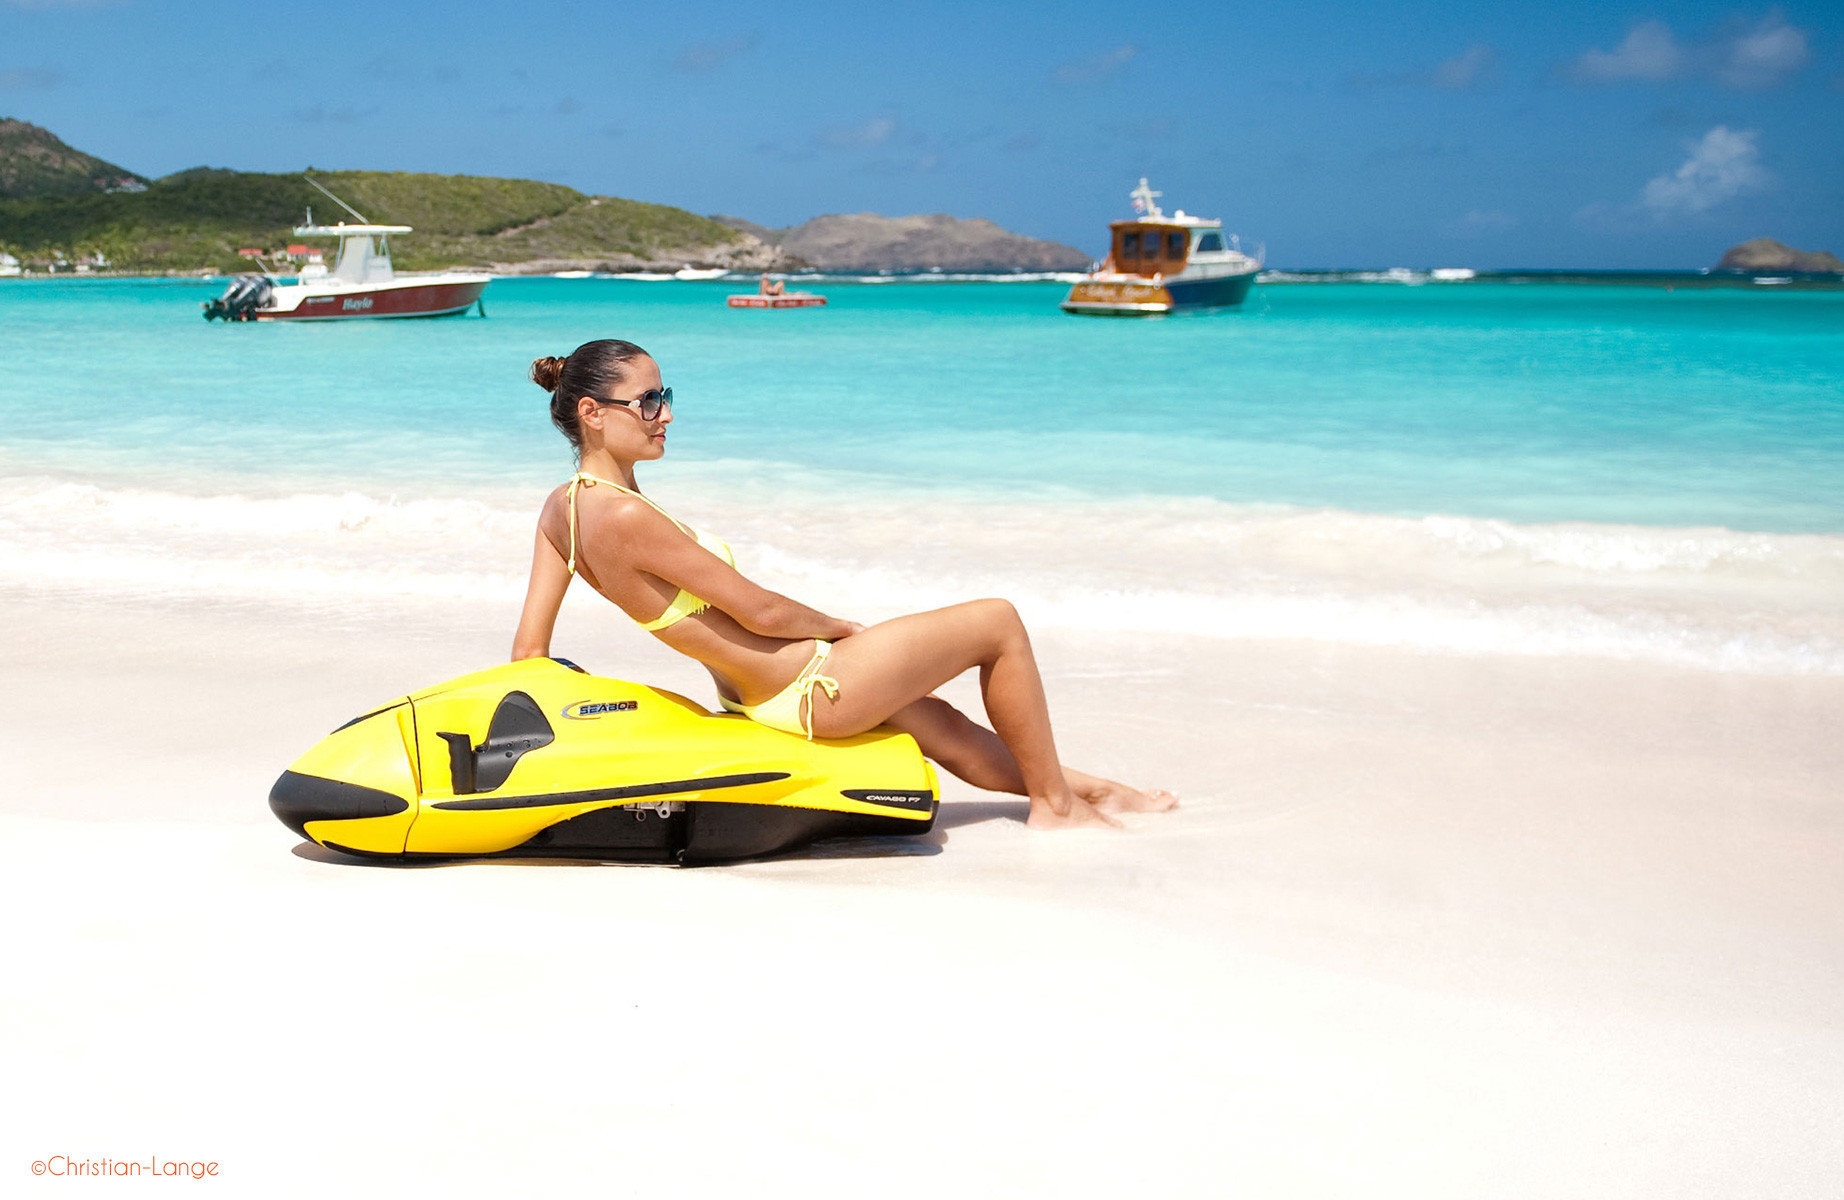 the seabob adventure is only available with Speedboat Xperience